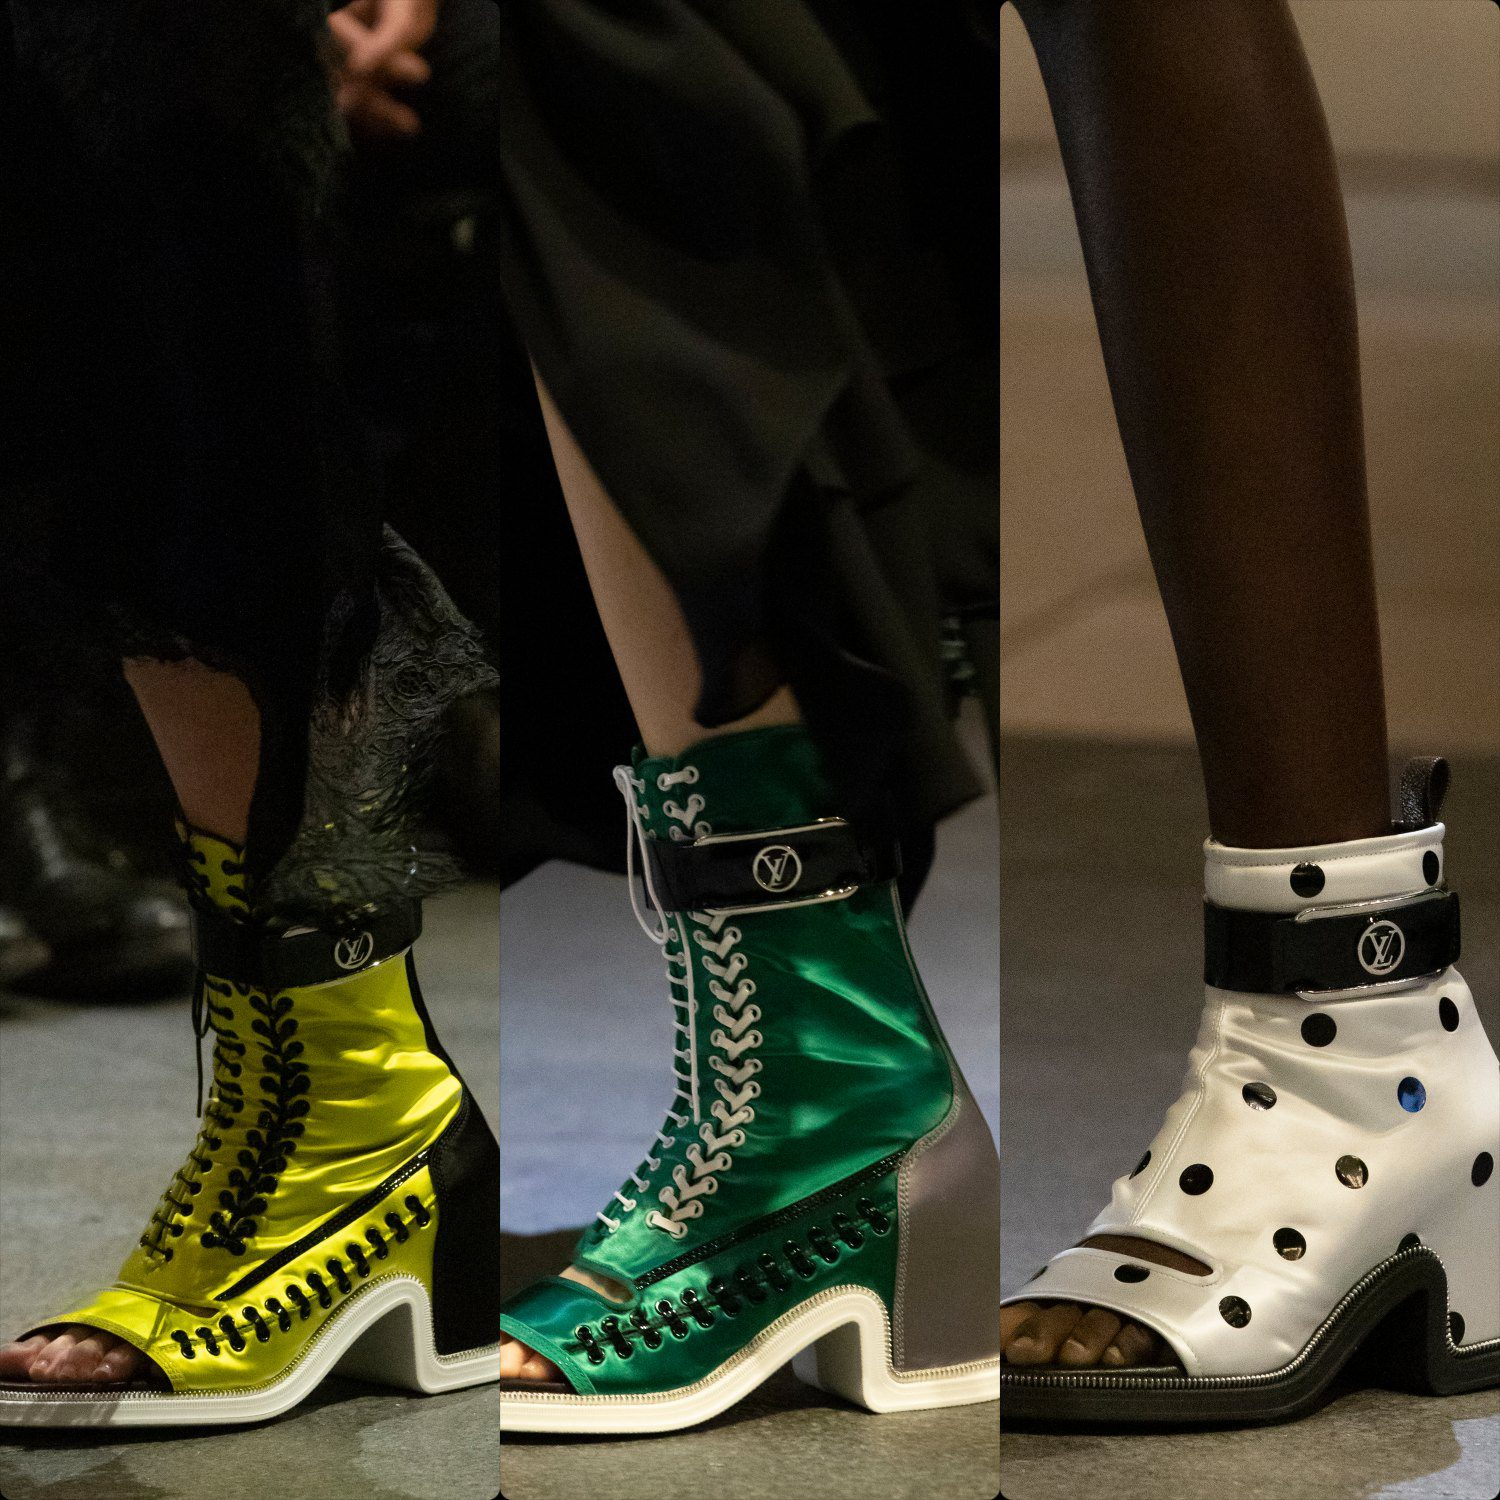 Louis Vuitton Spring Summer 2022 shoes by RUNWAY MAGAZINE